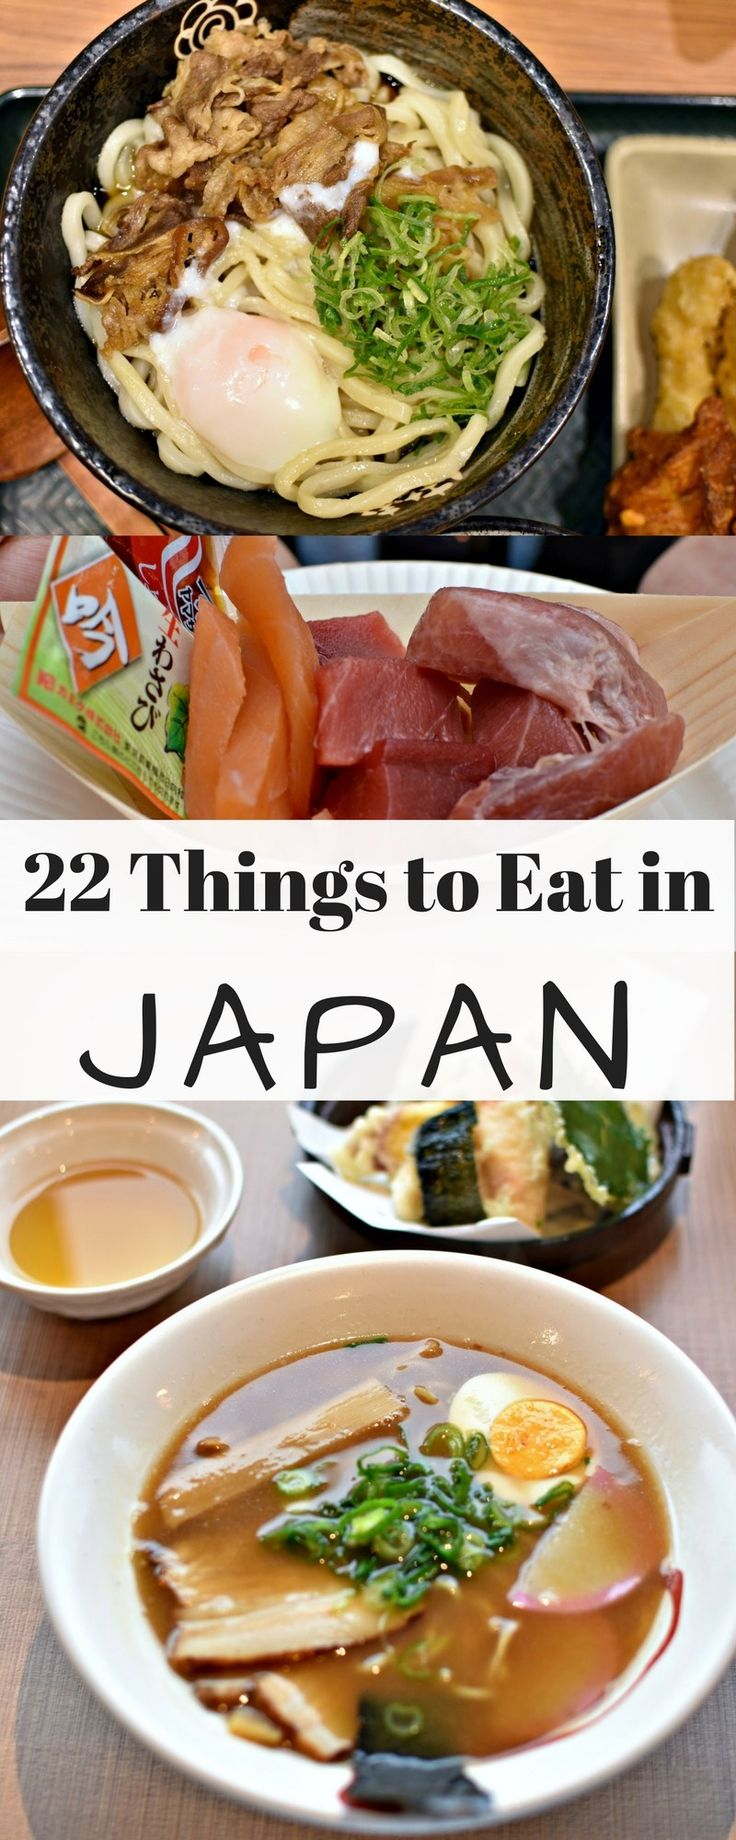 Street foods and traditional dishes to eat in Japan (Tokyo, Osaka, Kyoto) - yum!    Things to eat in japan, what to eat in japan, eating in japan, what to eat in tokyo, what to eat in osaka, what to eat in kyoto, traditional japanese food, japan foodie, japanese food, japanese foodie. travel to japan, visit japan, cherry blossom season in Japan, sakura in japan.